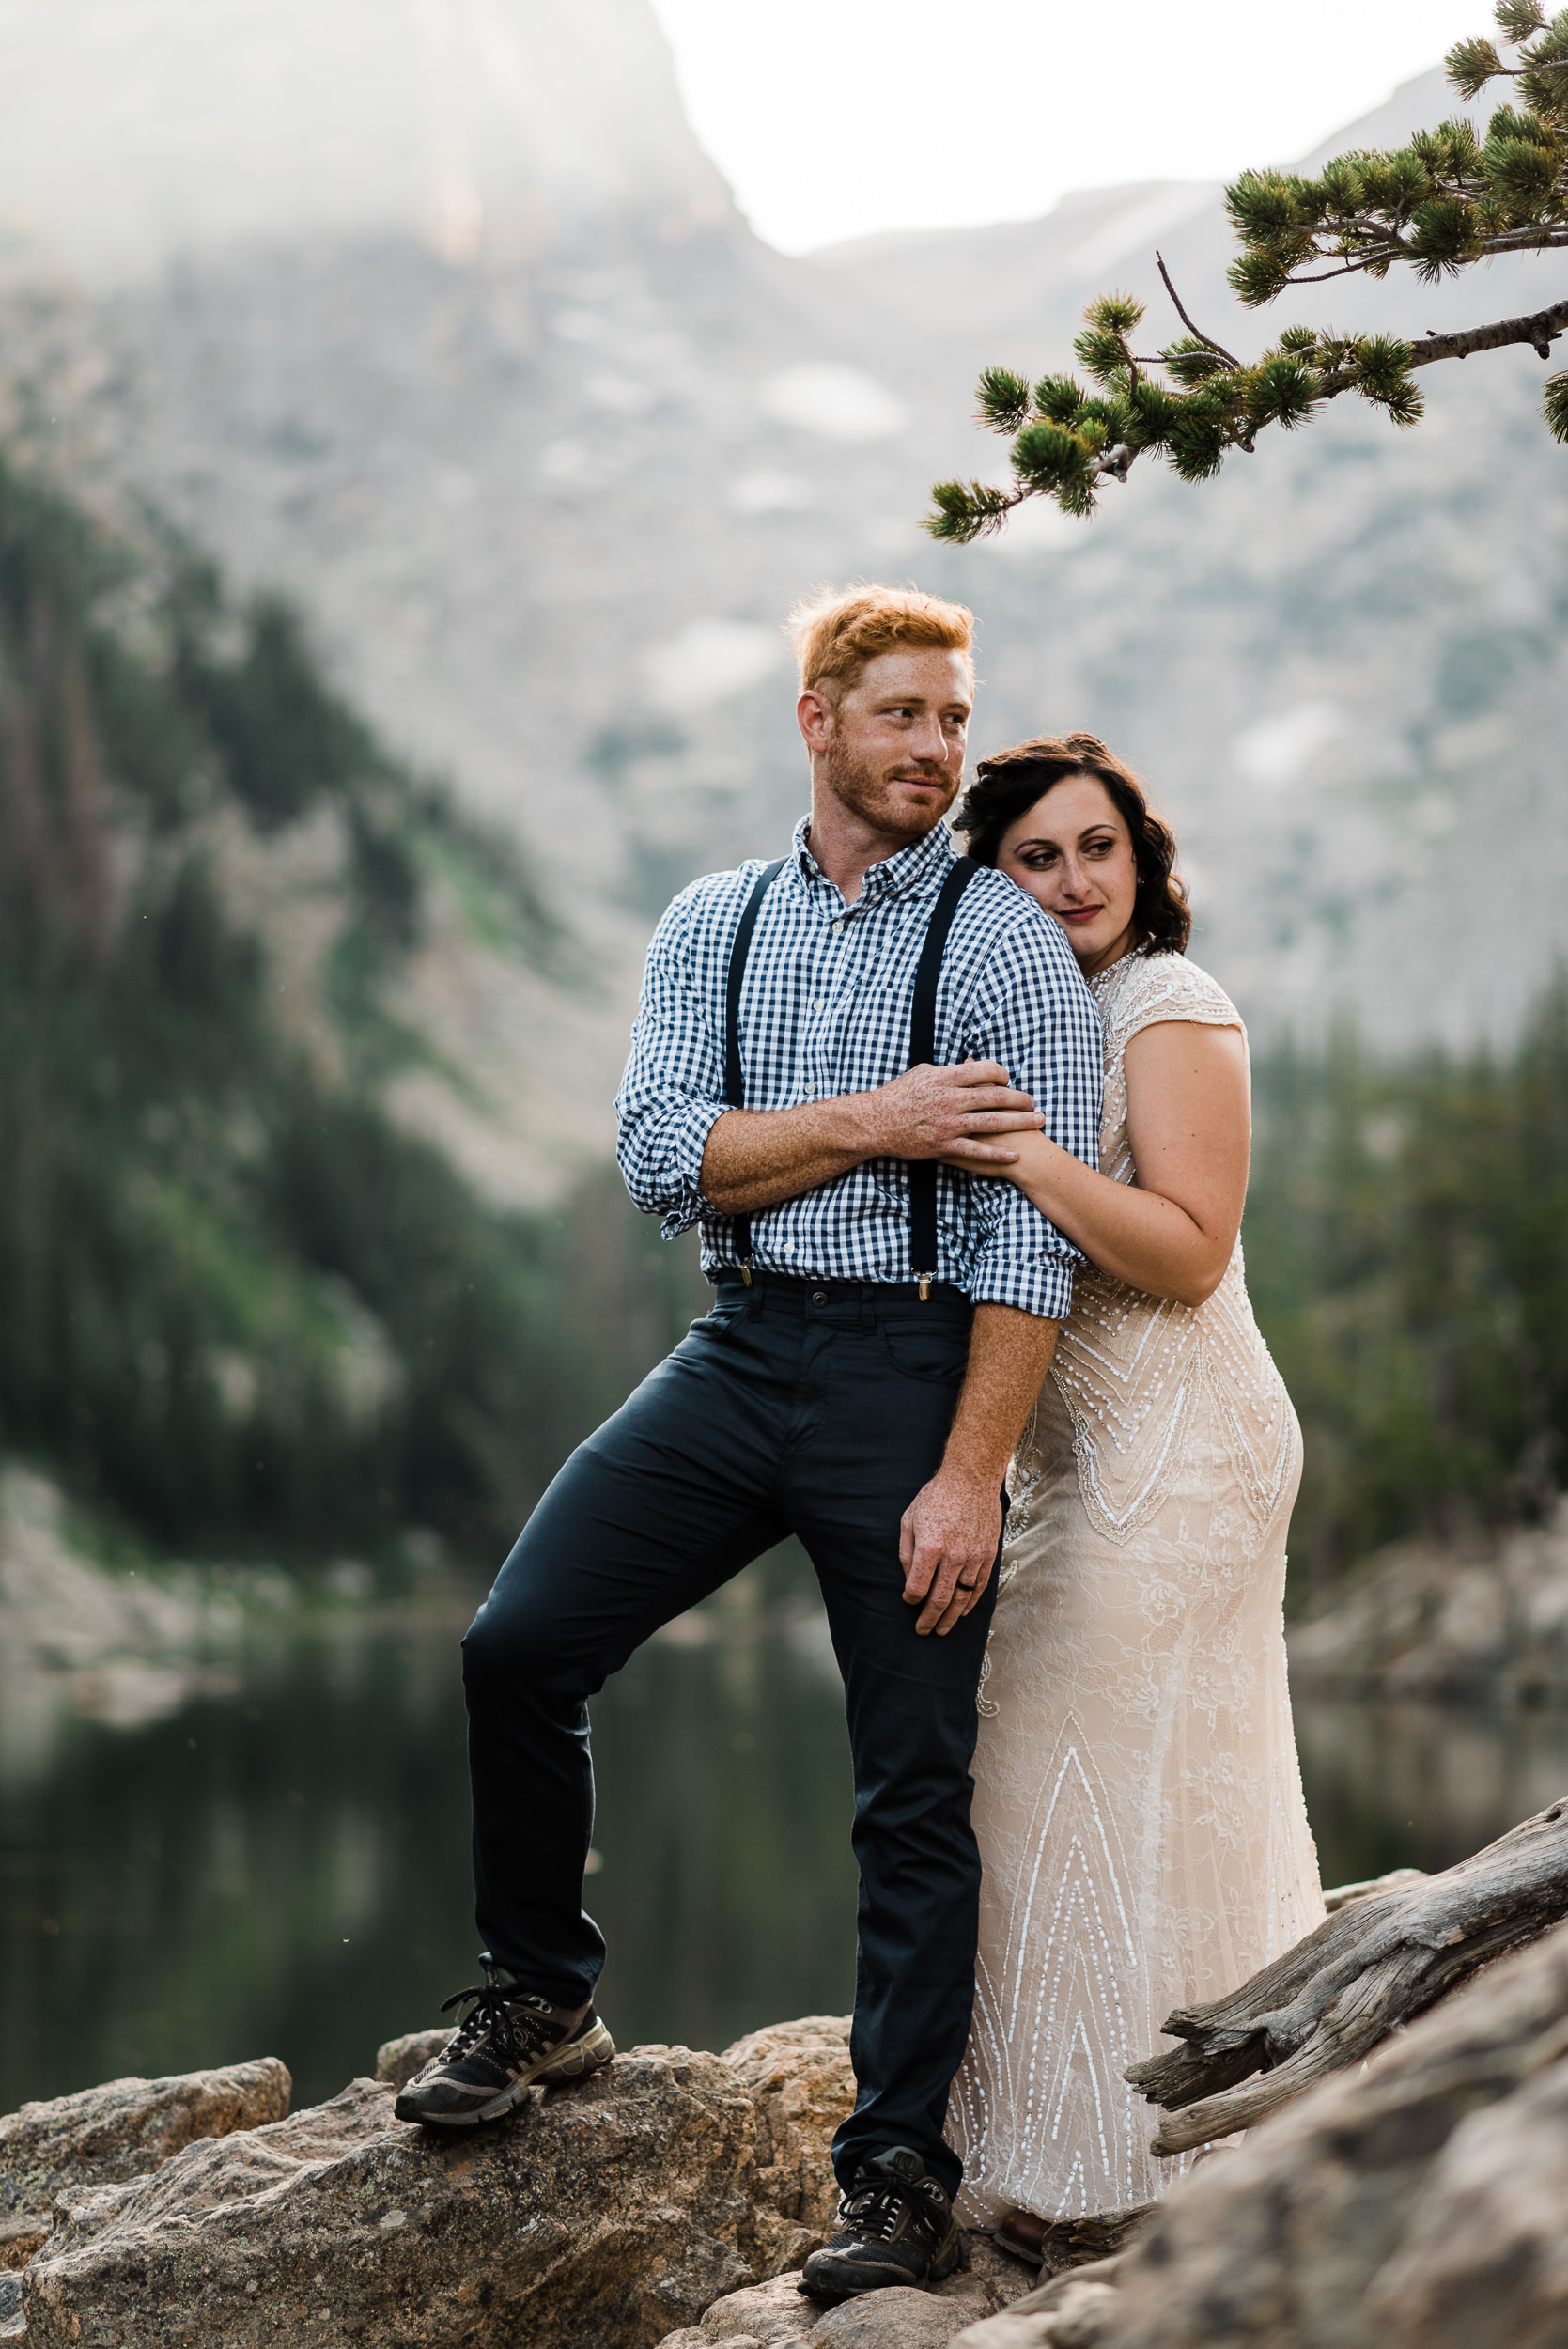 A couple hold each other close in Rocky Mountain National Park. They were married earlier in the day somewhere else in the park before hiking out. Their perched on a rock, a tree branch overhead, a lake reflecting the trees and dramatic peaks behind them.